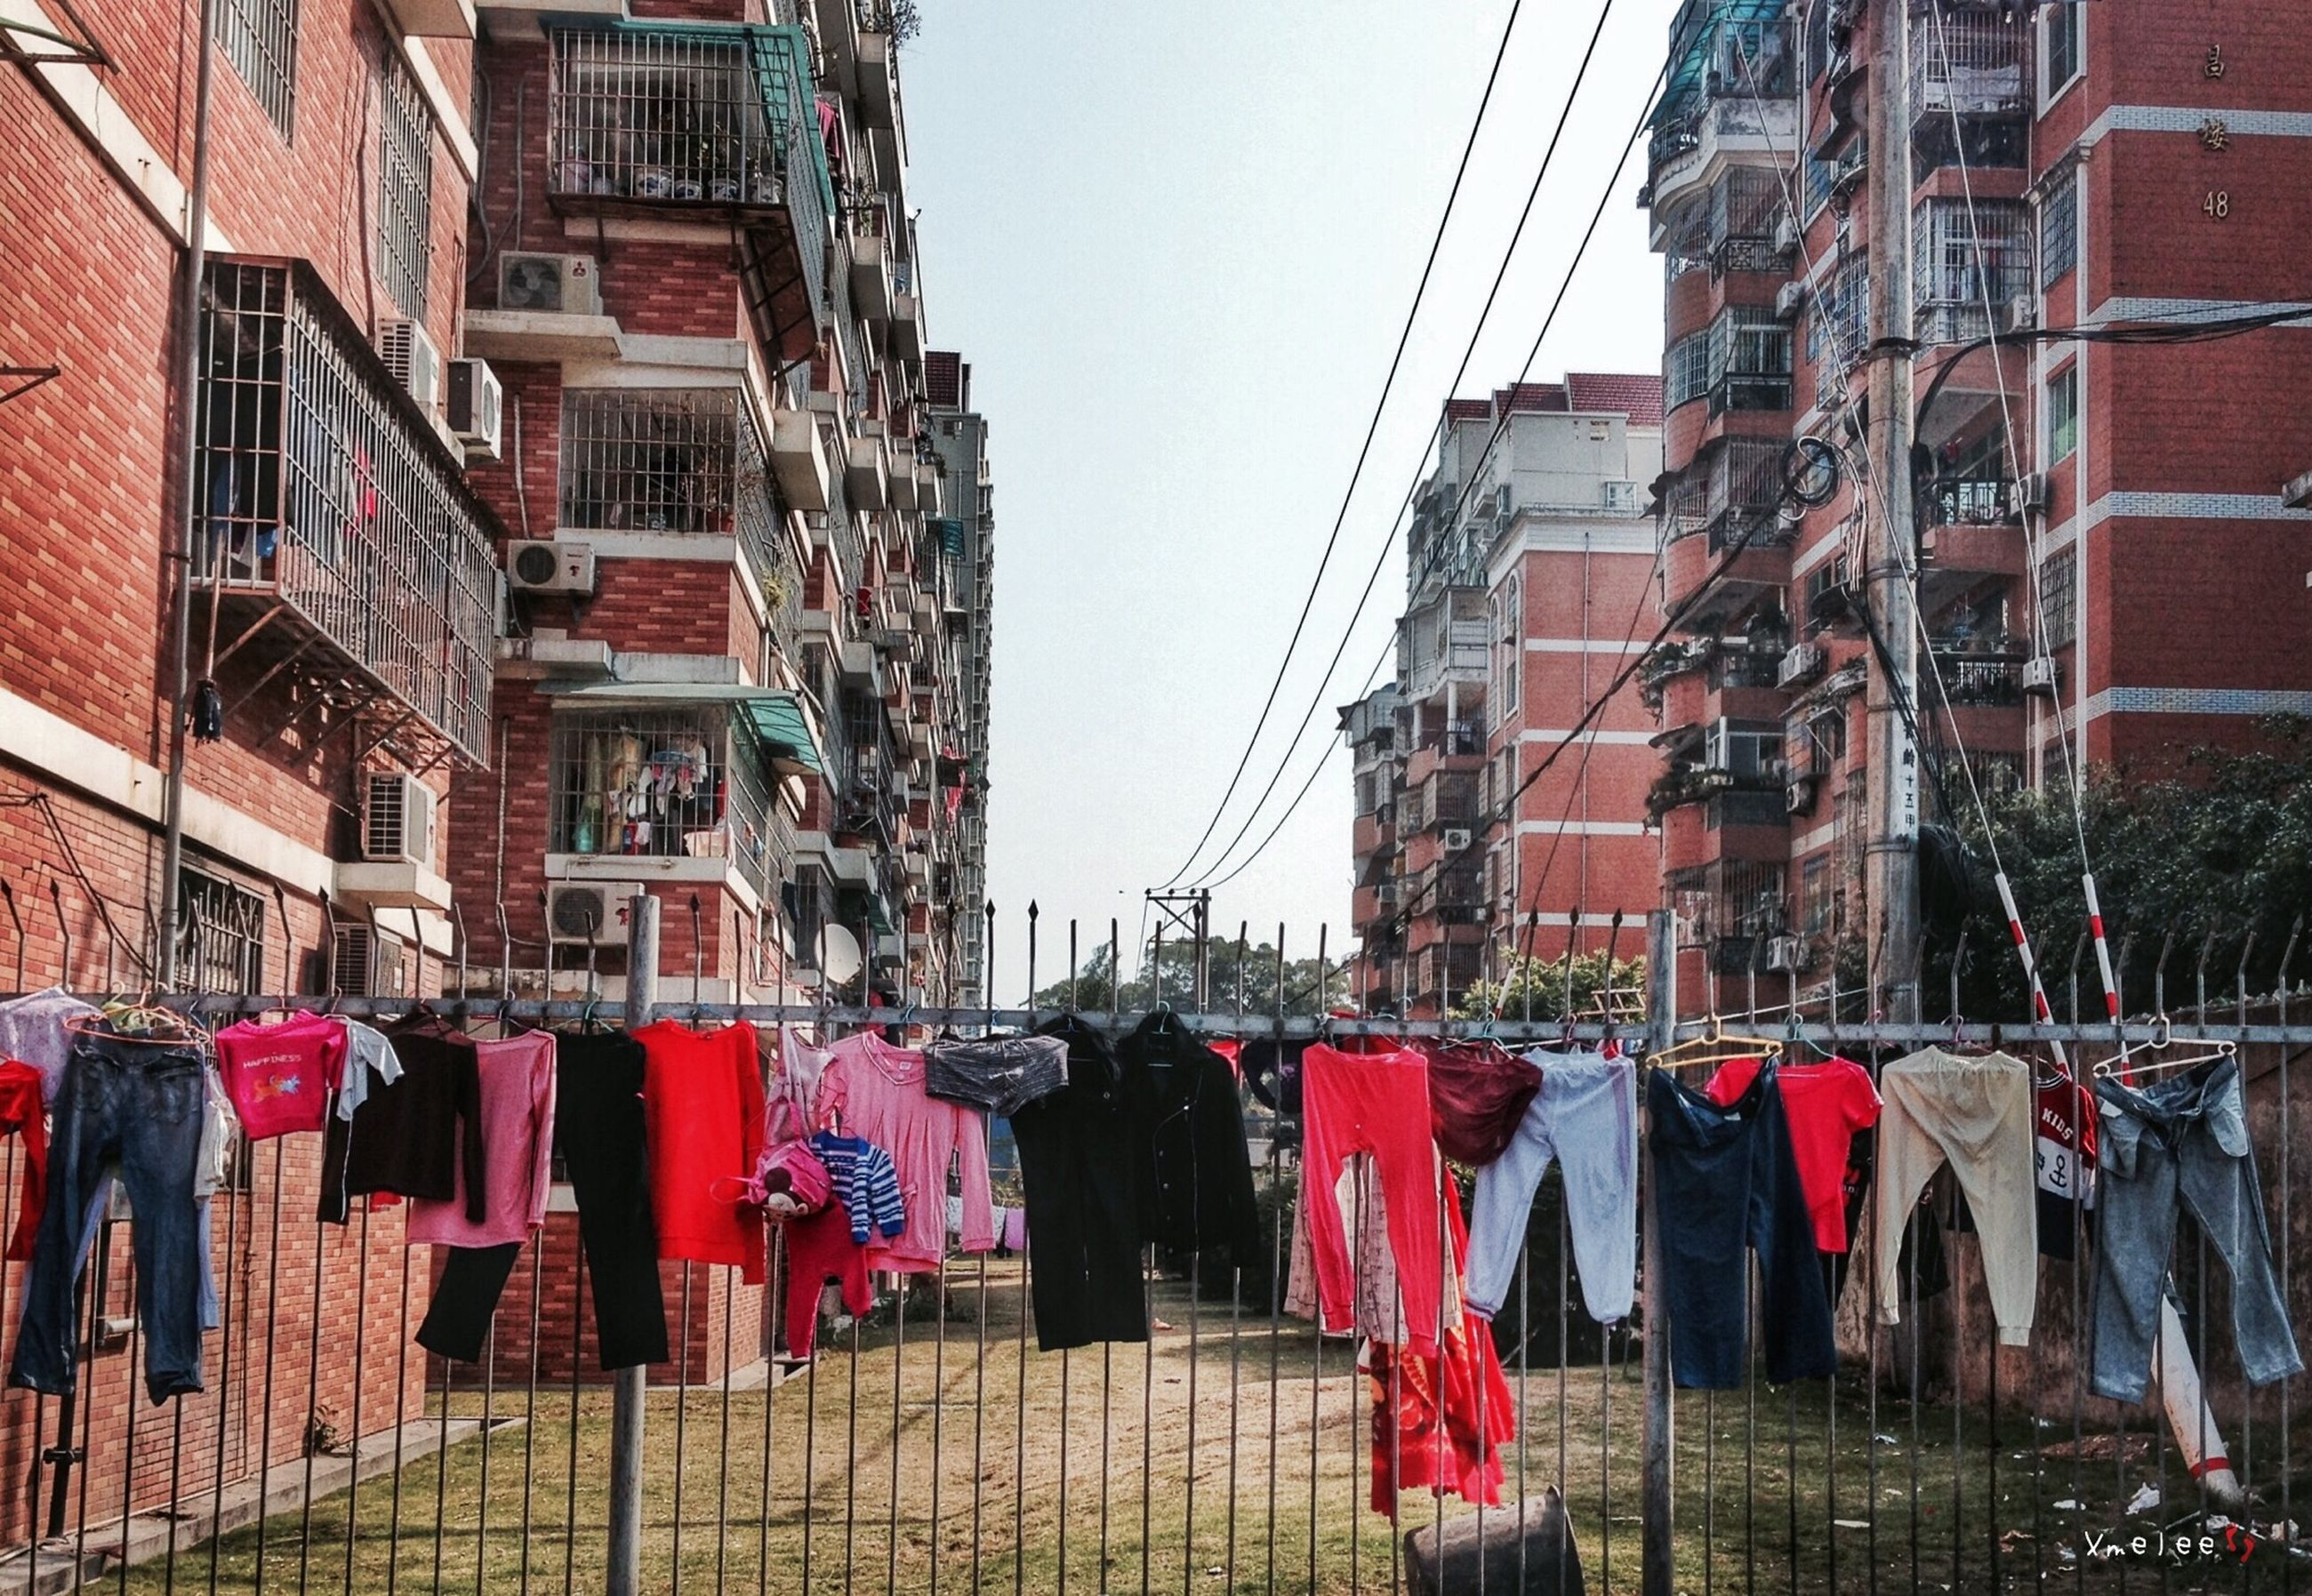 building exterior, architecture, built structure, men, person, large group of people, city, walking, street, building, lifestyles, drying, flag, city life, day, clothing, residential structure, market, residential building